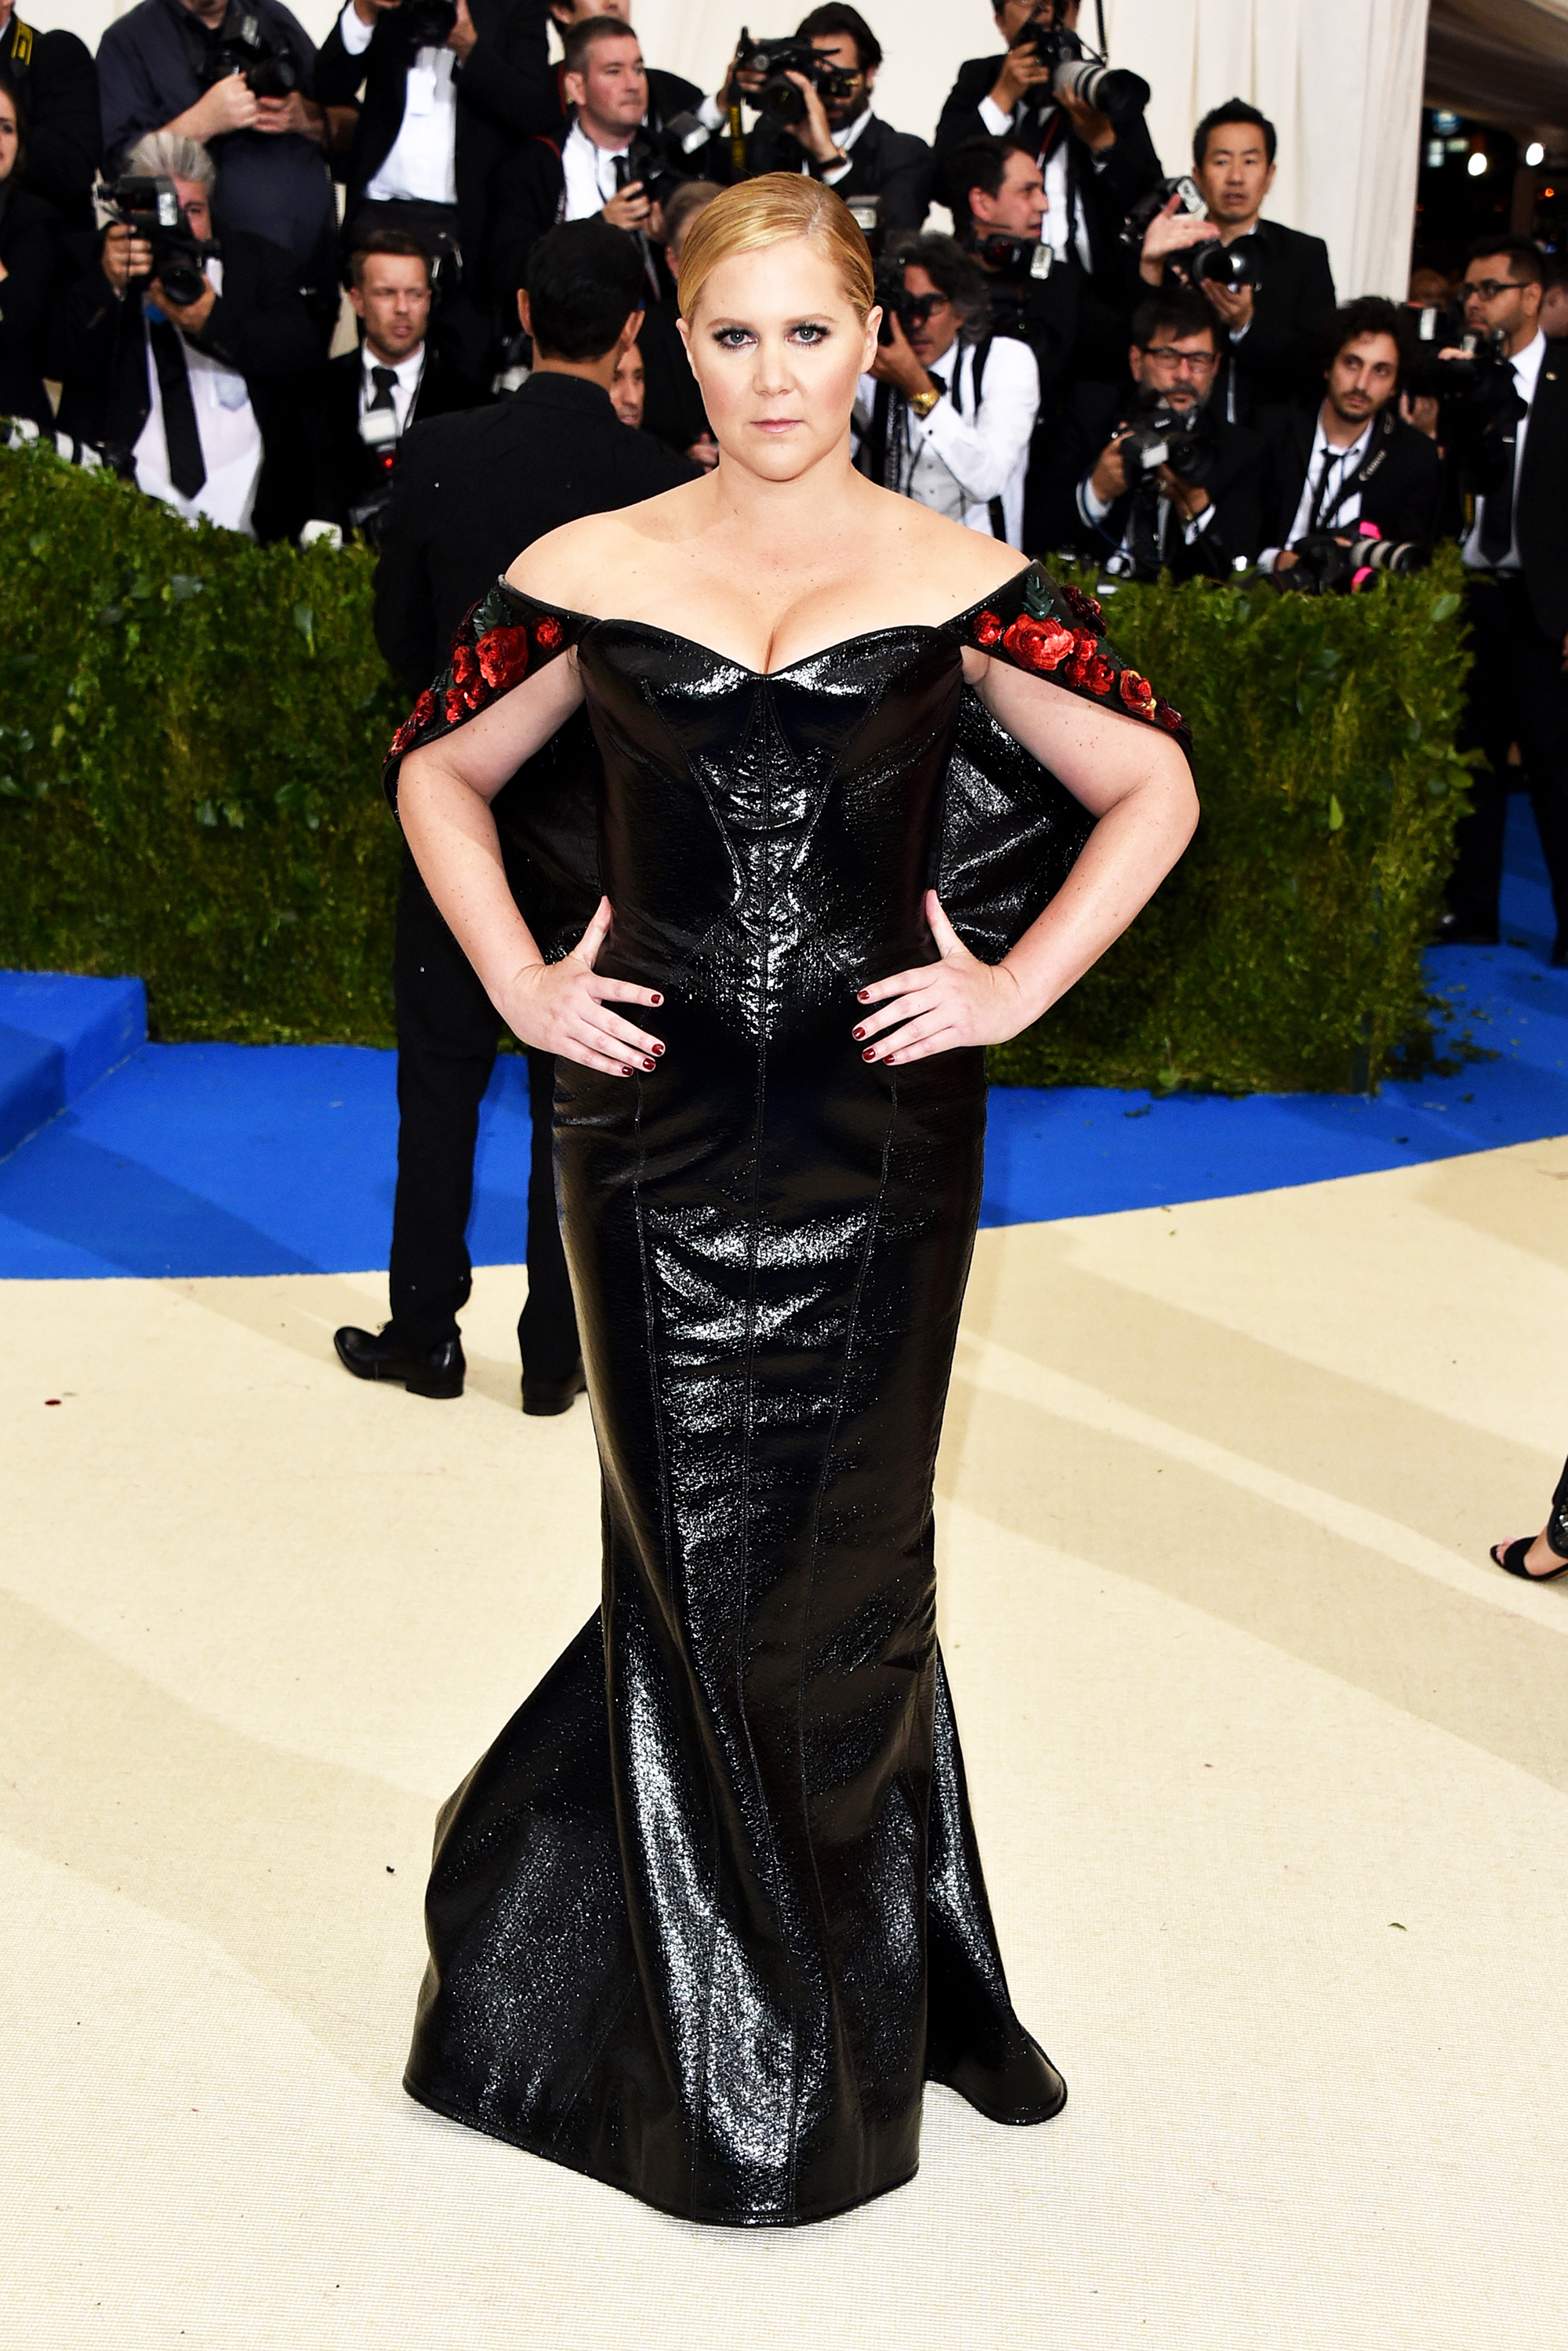 Amy Schumer attends The Metropolitan Museum of Art's Costume Institute benefit gala celebrating the opening of the Rei Kawakubo/Comme des Garçons: Art of the In-Between exhibition in New York City, on May 1, 2017.